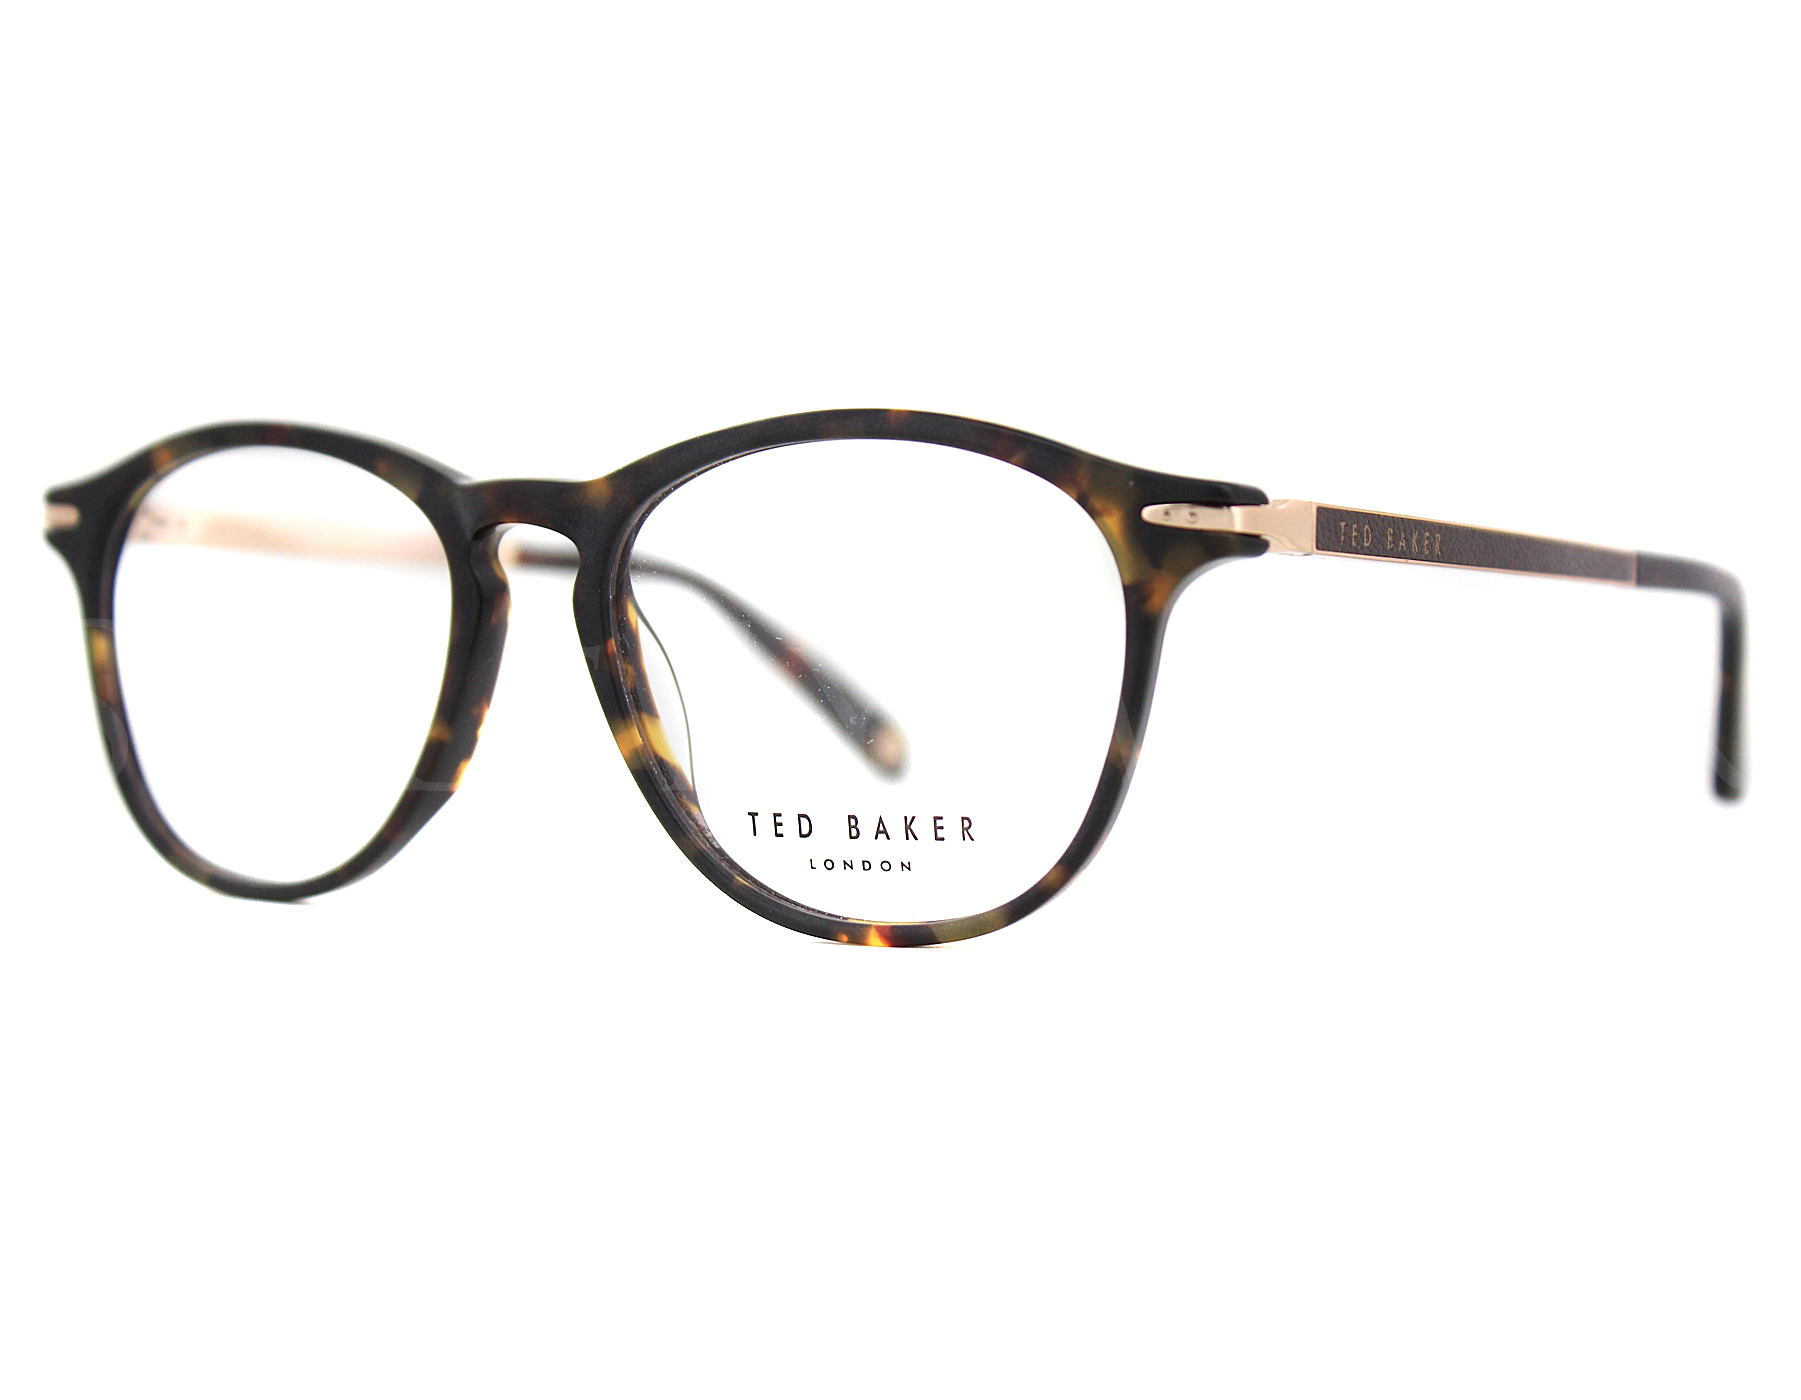 fbaceacae2 Details about NEW Ted Baker Finch TB 8160 145 50mm Tortoise Optical Eyeglasses  Frames